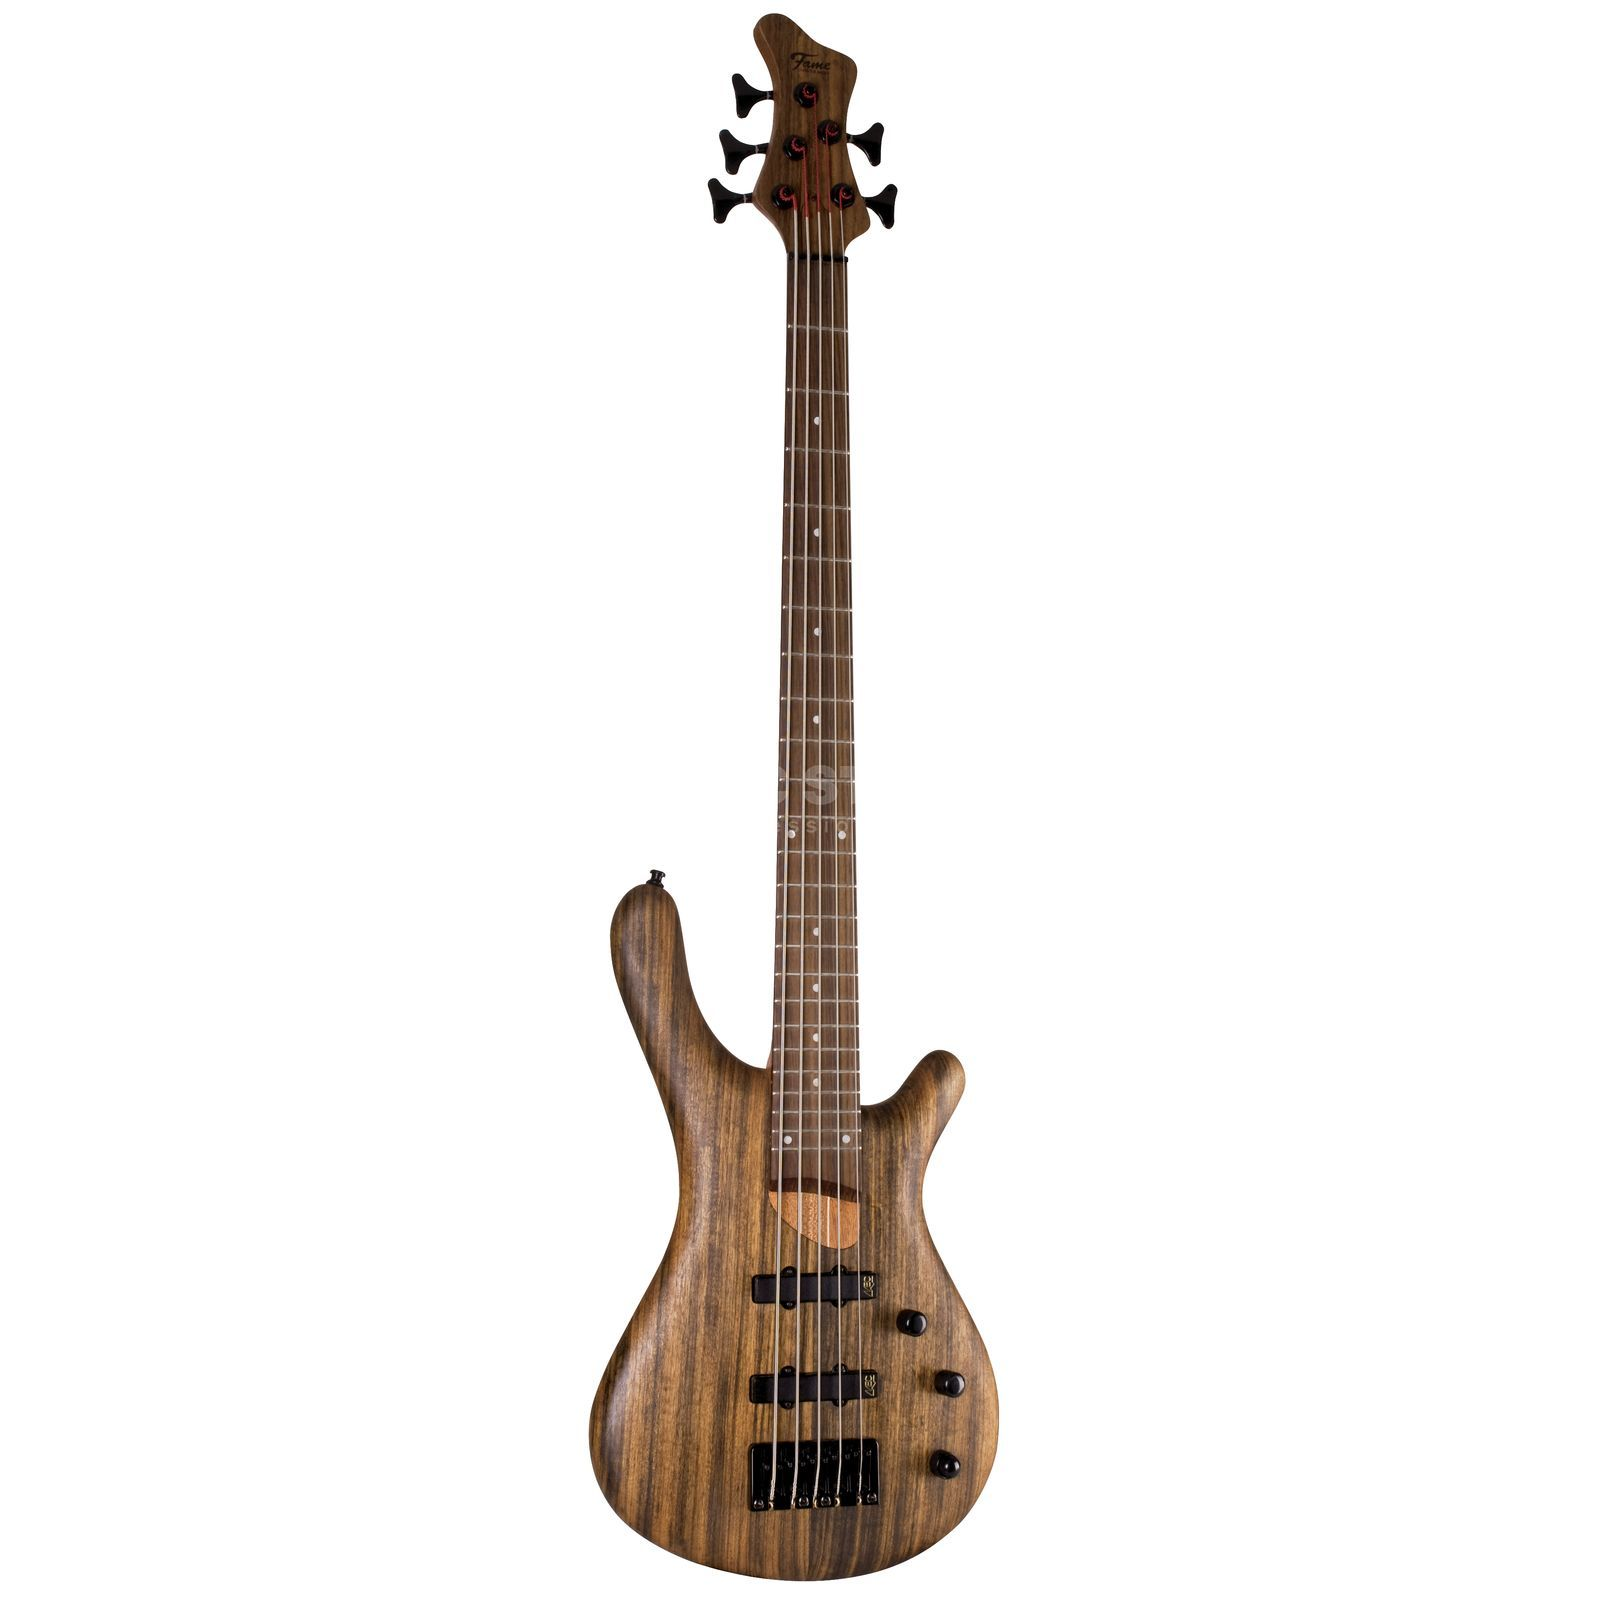 Fame Baphomet 5 Natural 5-String E- Bass Guitar, Natural Oil Zdjęcie produktu